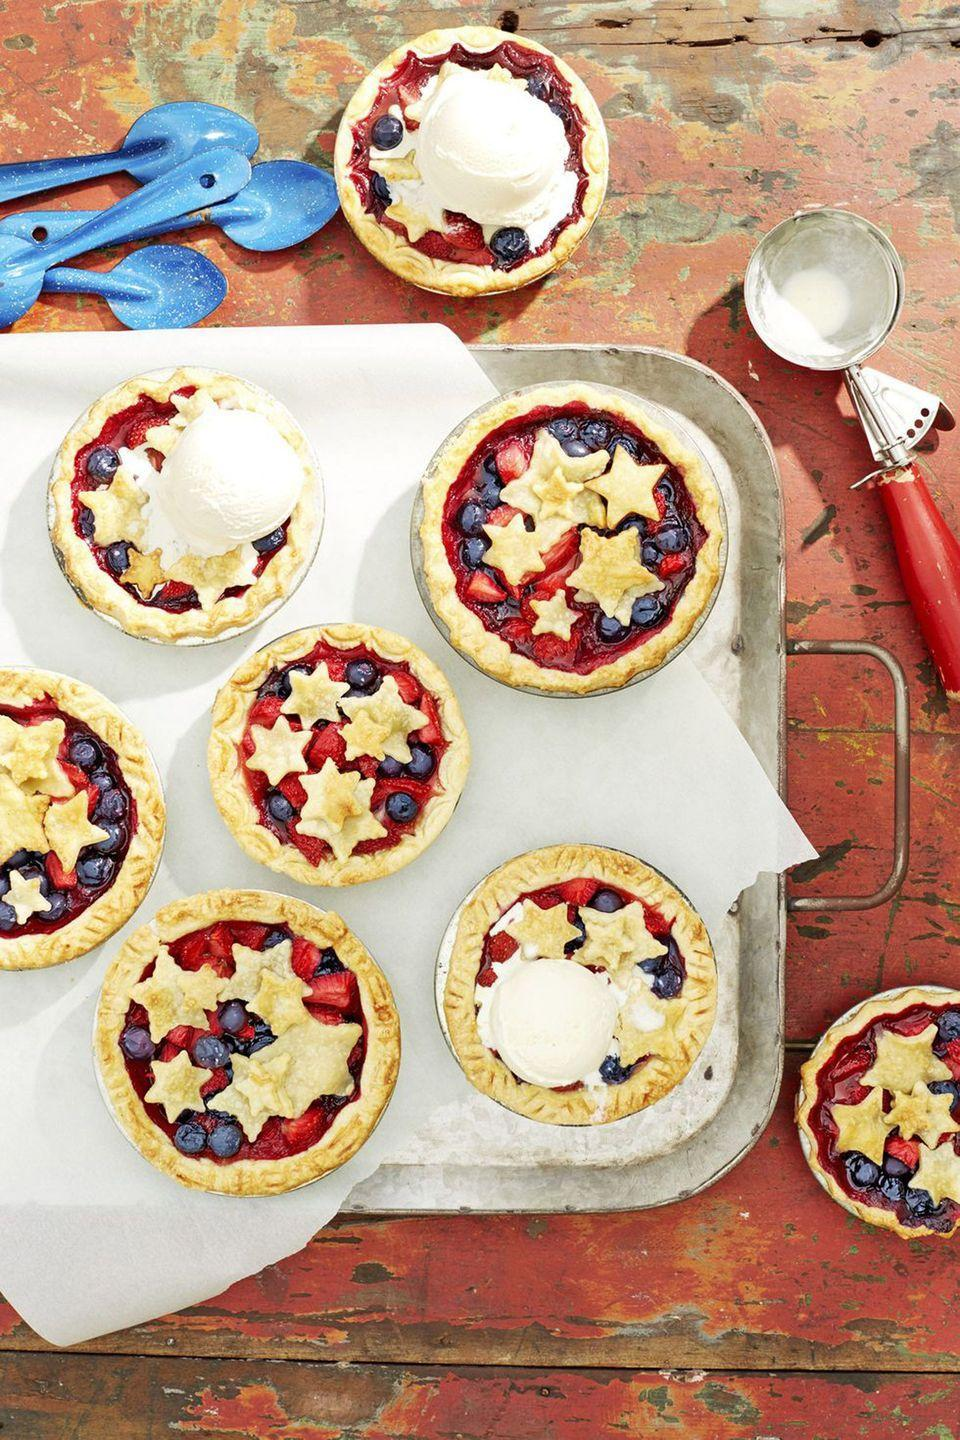 """<p>Give this traditional American dessert a mini makeover with personal-size pans and star cut-outs. </p><p><a class=""""link rapid-noclick-resp"""" href=""""https://www.amazon.com/FASAKA-Stainless-Cutters-Pressing-sandwich/dp/B075F6H5DC?tag=syn-yahoo-20&ascsubtag=%5Bartid%7C10055.g.1748%5Bsrc%7Cyahoo-us"""" rel=""""nofollow noopener"""" target=""""_blank"""" data-ylk=""""slk:SHOP STAR COOKIE CUTTERS"""">SHOP STAR COOKIE CUTTERS</a><br></p><p><em><a href=""""https://www.countryliving.com/food-drinks/a21348015/mini-stars-berry-pies-recipe/"""" rel=""""nofollow noopener"""" target=""""_blank"""" data-ylk=""""slk:Get the recipe from Country Living »"""" class=""""link rapid-noclick-resp"""">Get the recipe from Country Living »</a></em></p>"""